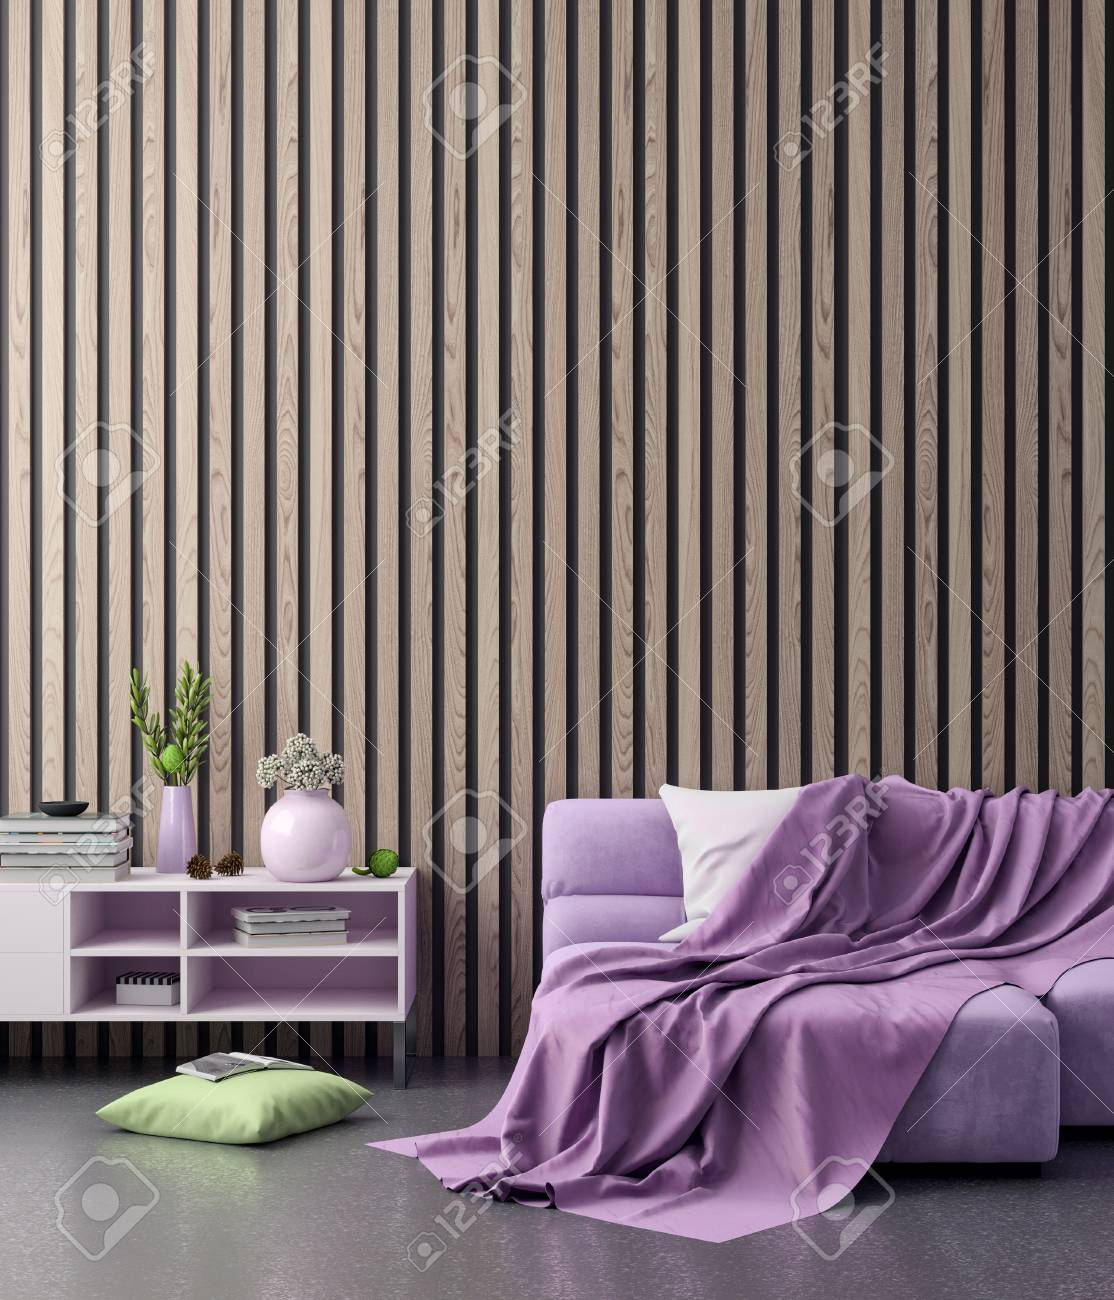 101088898 mock up poster frame in hipster interior background in pink colors and wooden panels 3d render 3d il